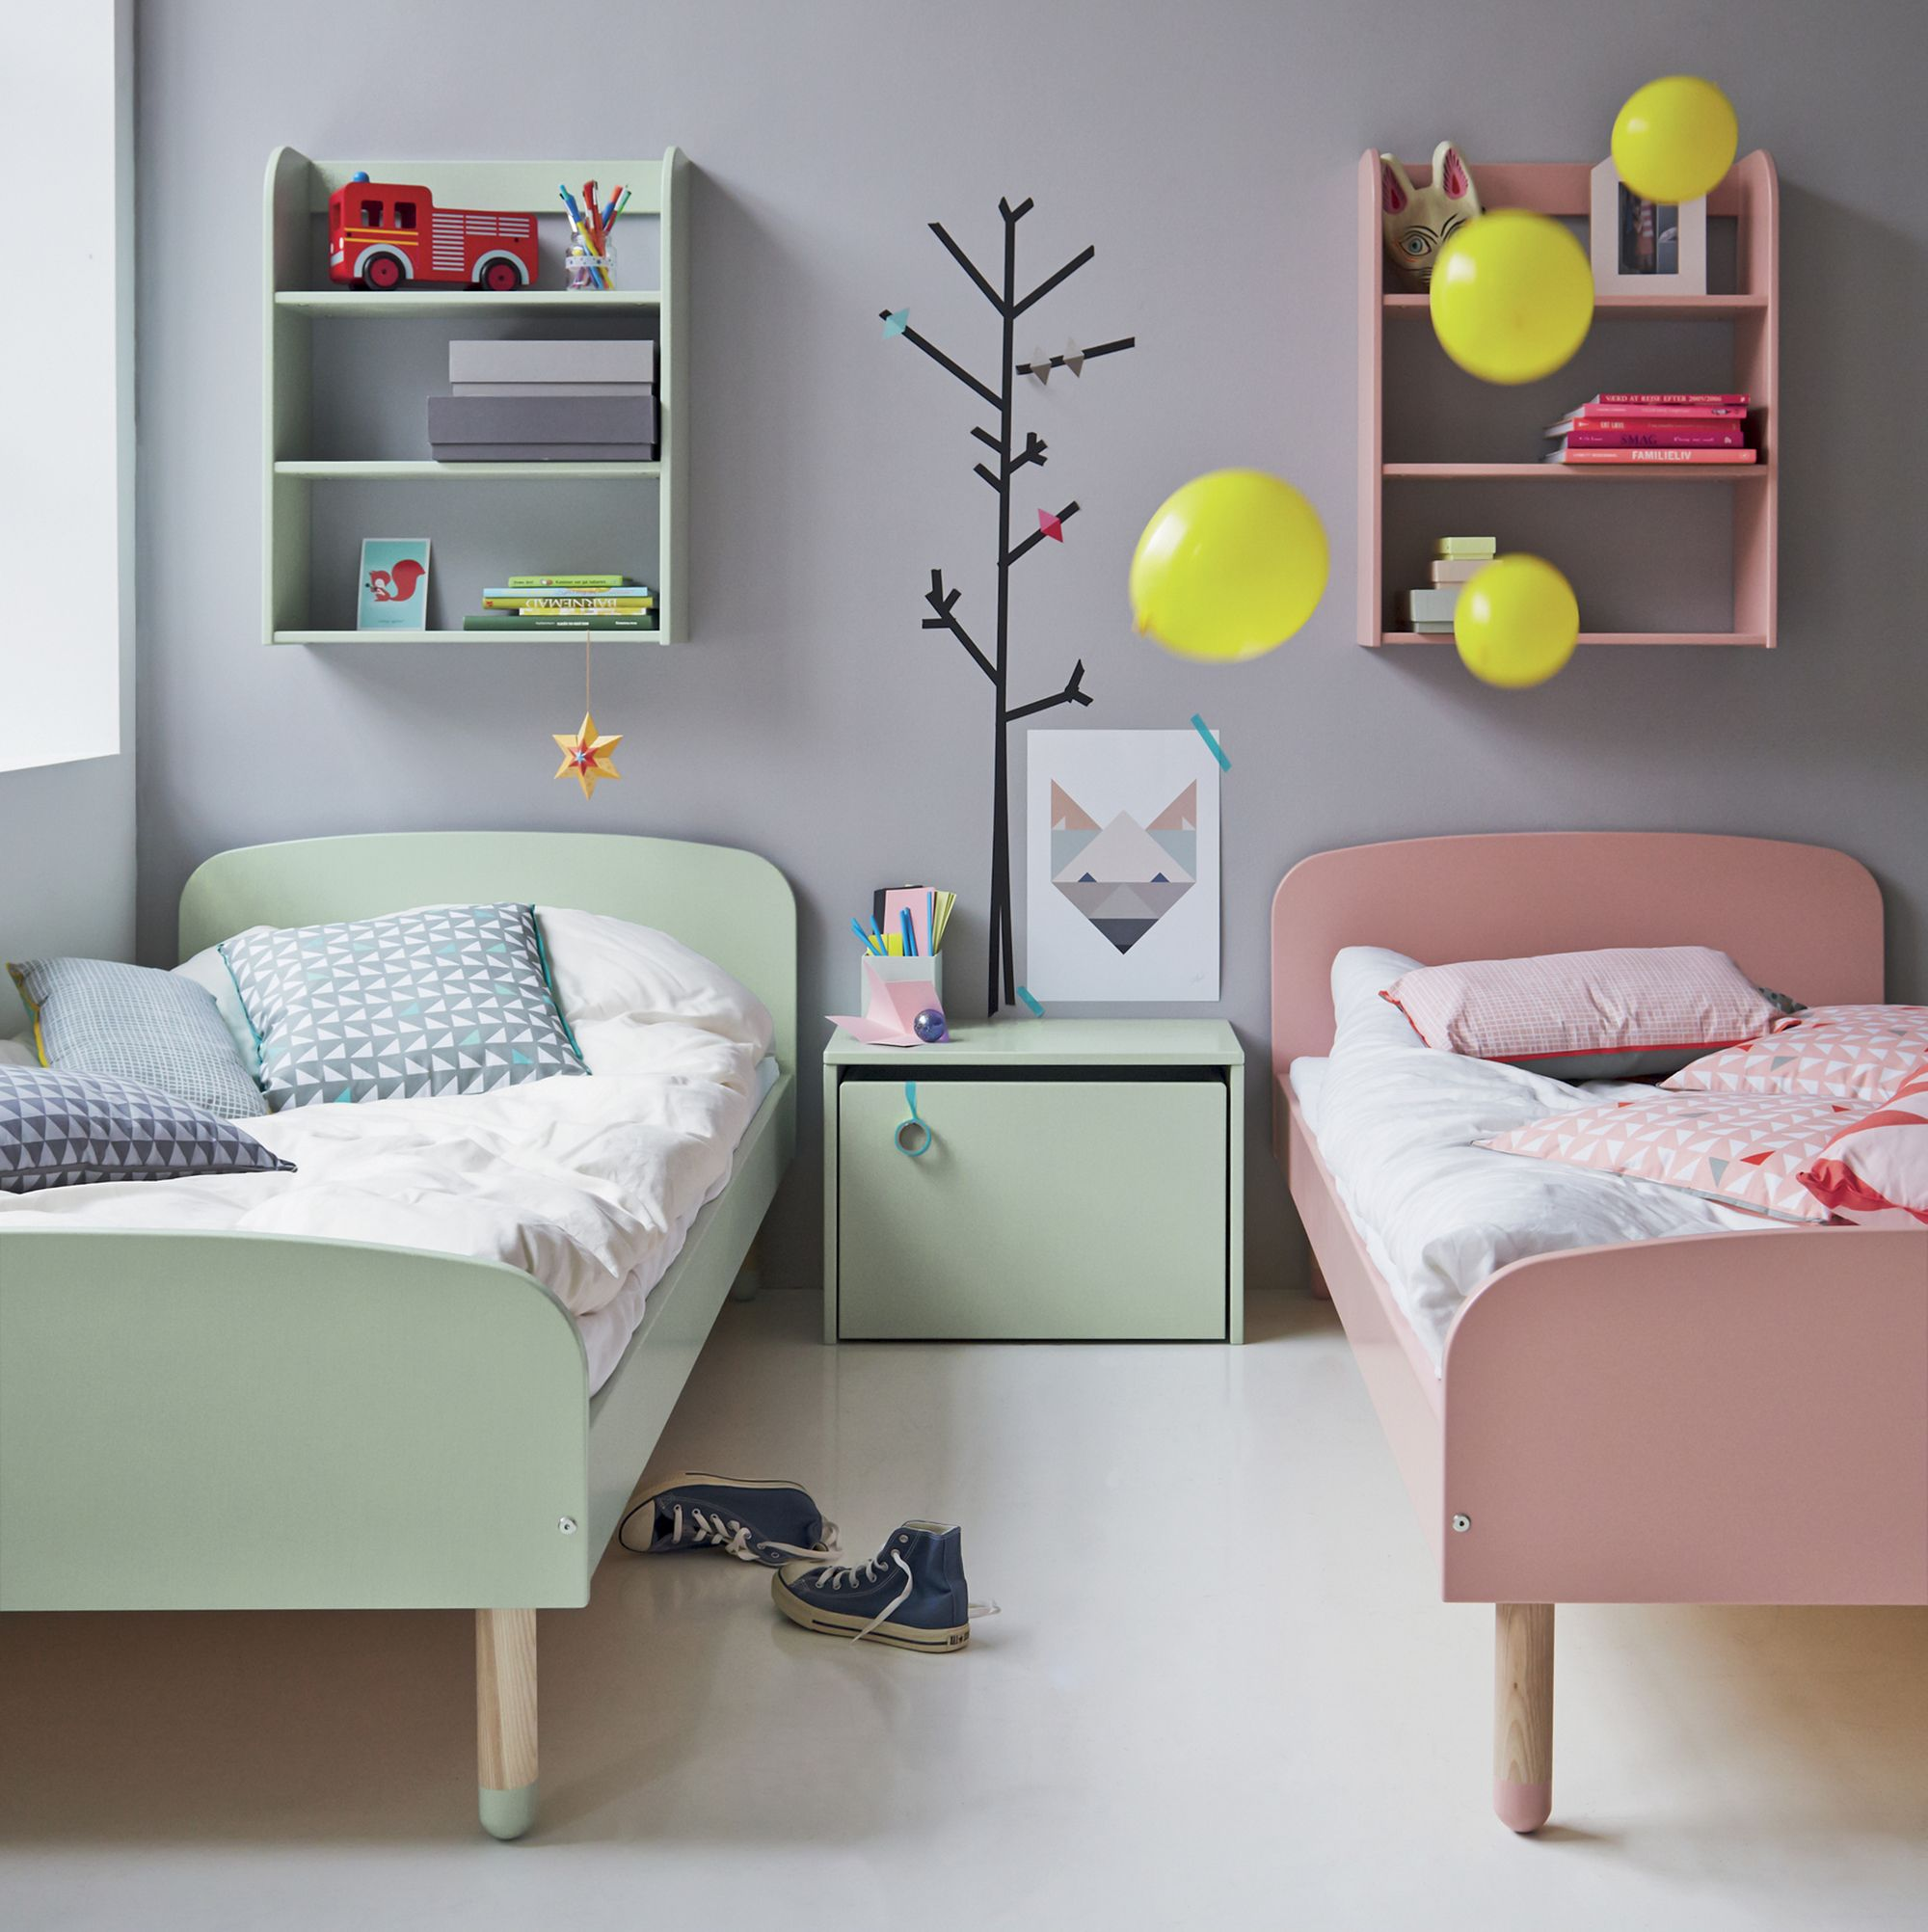 Single Beds For Kids Flexa Play Kids Single Bed In Mint Green Bedroom Decor